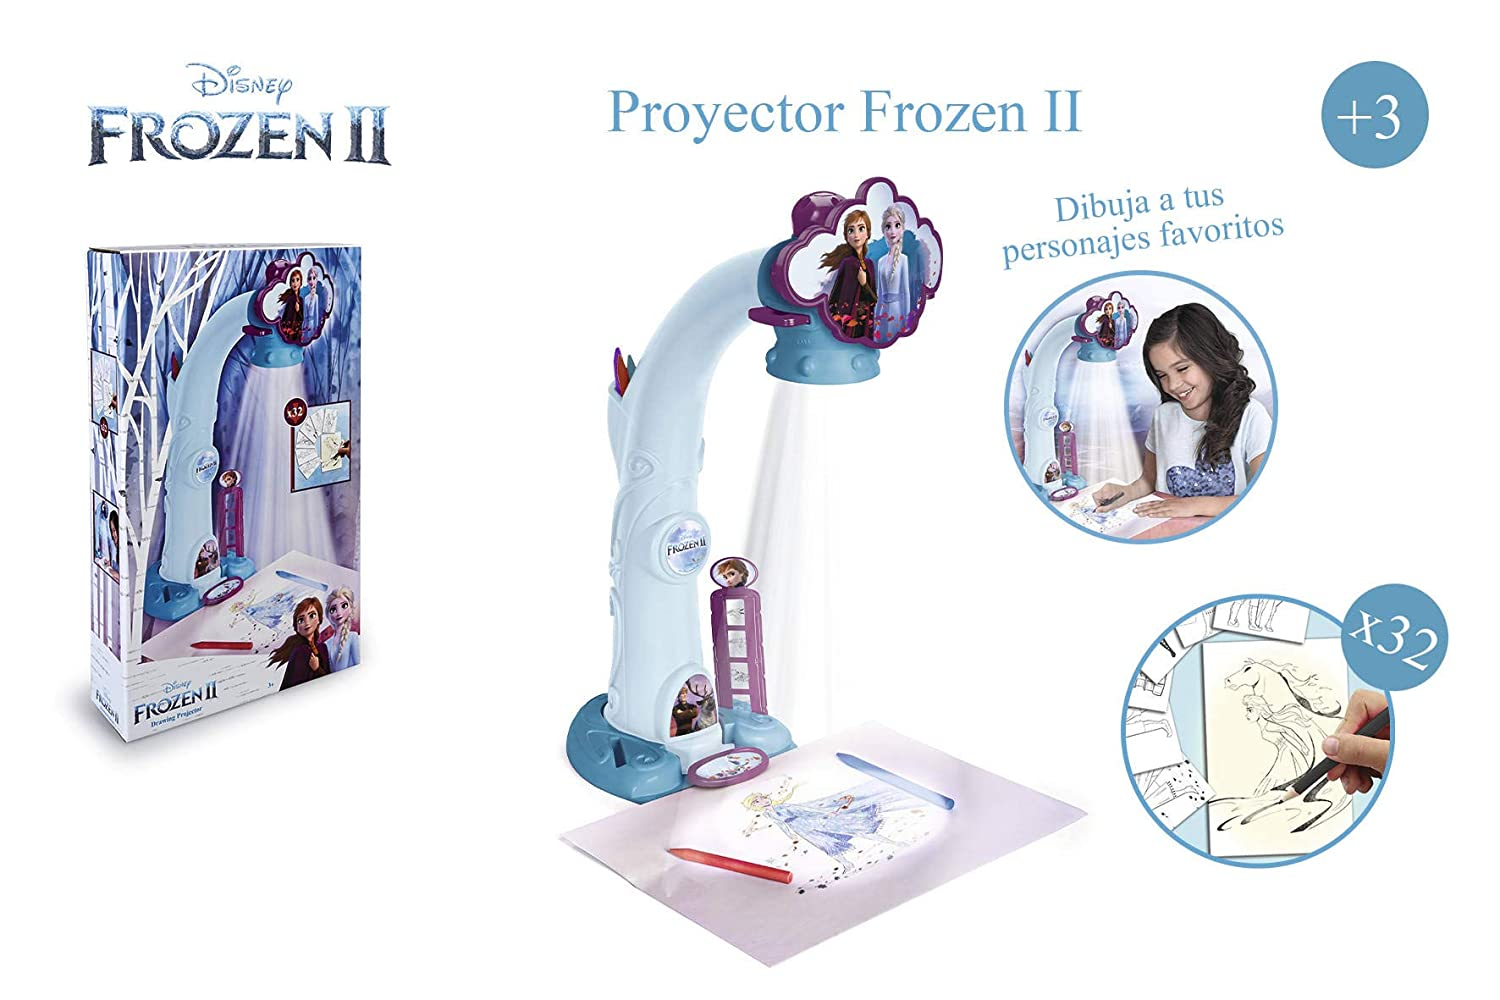 Amazon.com: Magic Artist – Frozen 2 Projector for Drawing ...